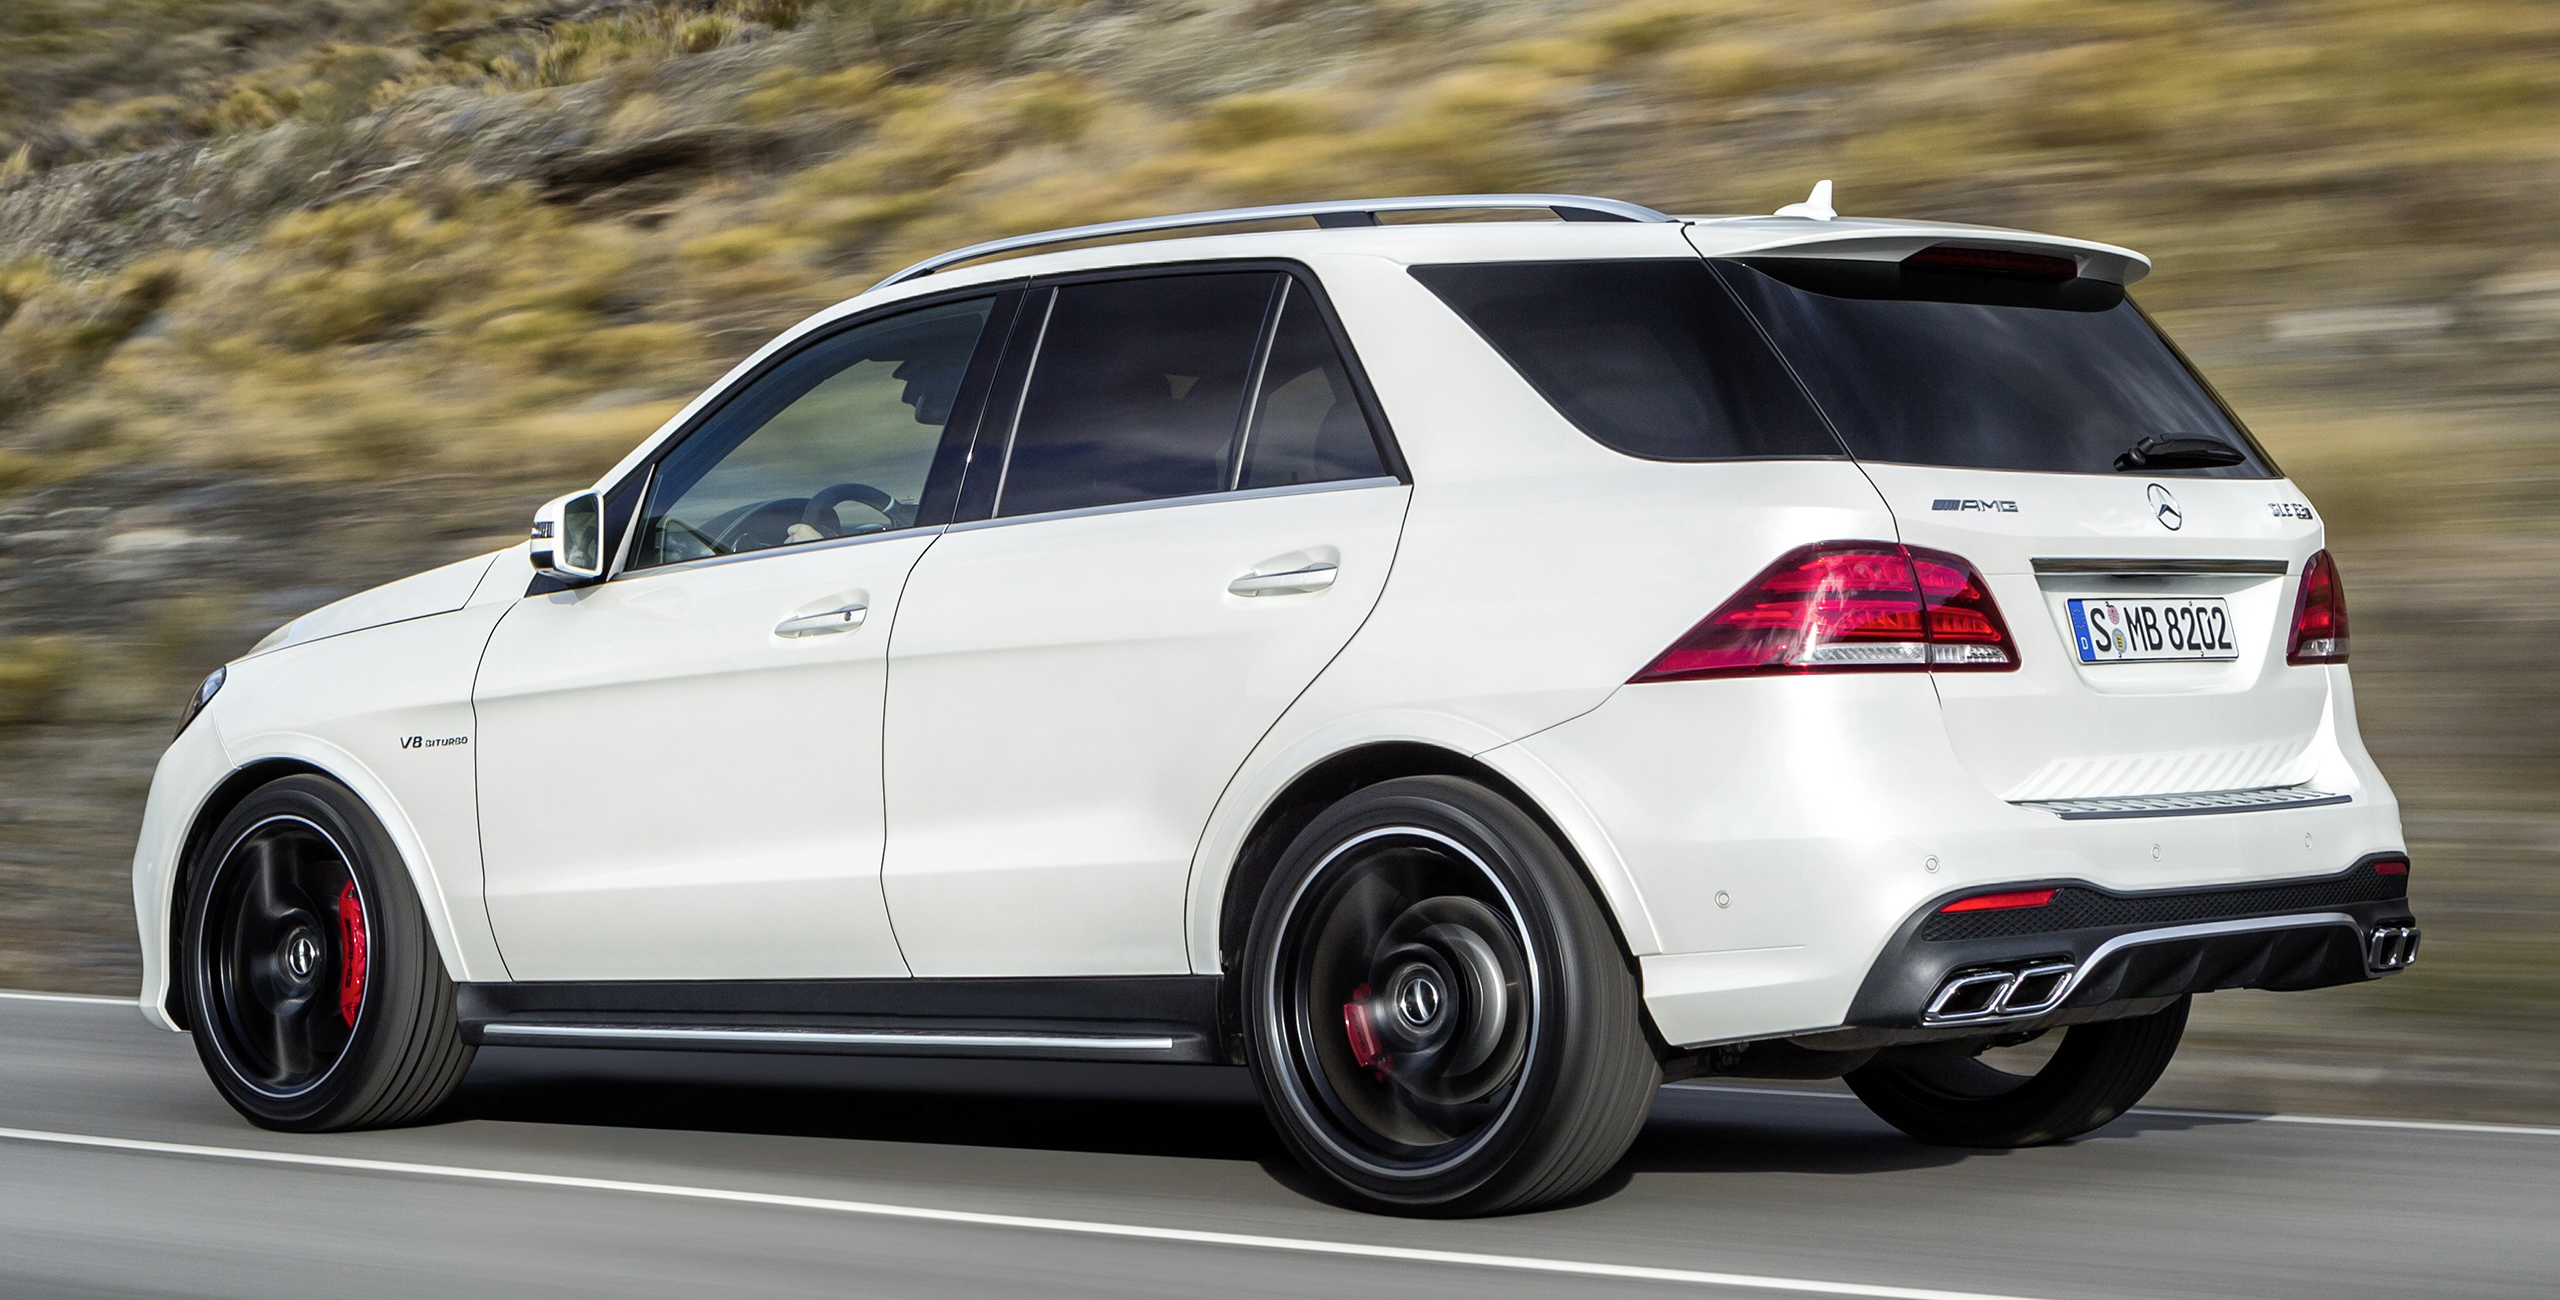 Mercedes amg gle 63 revealed ahead of ny debut 5 5 litre for Embrace by mercedes benz